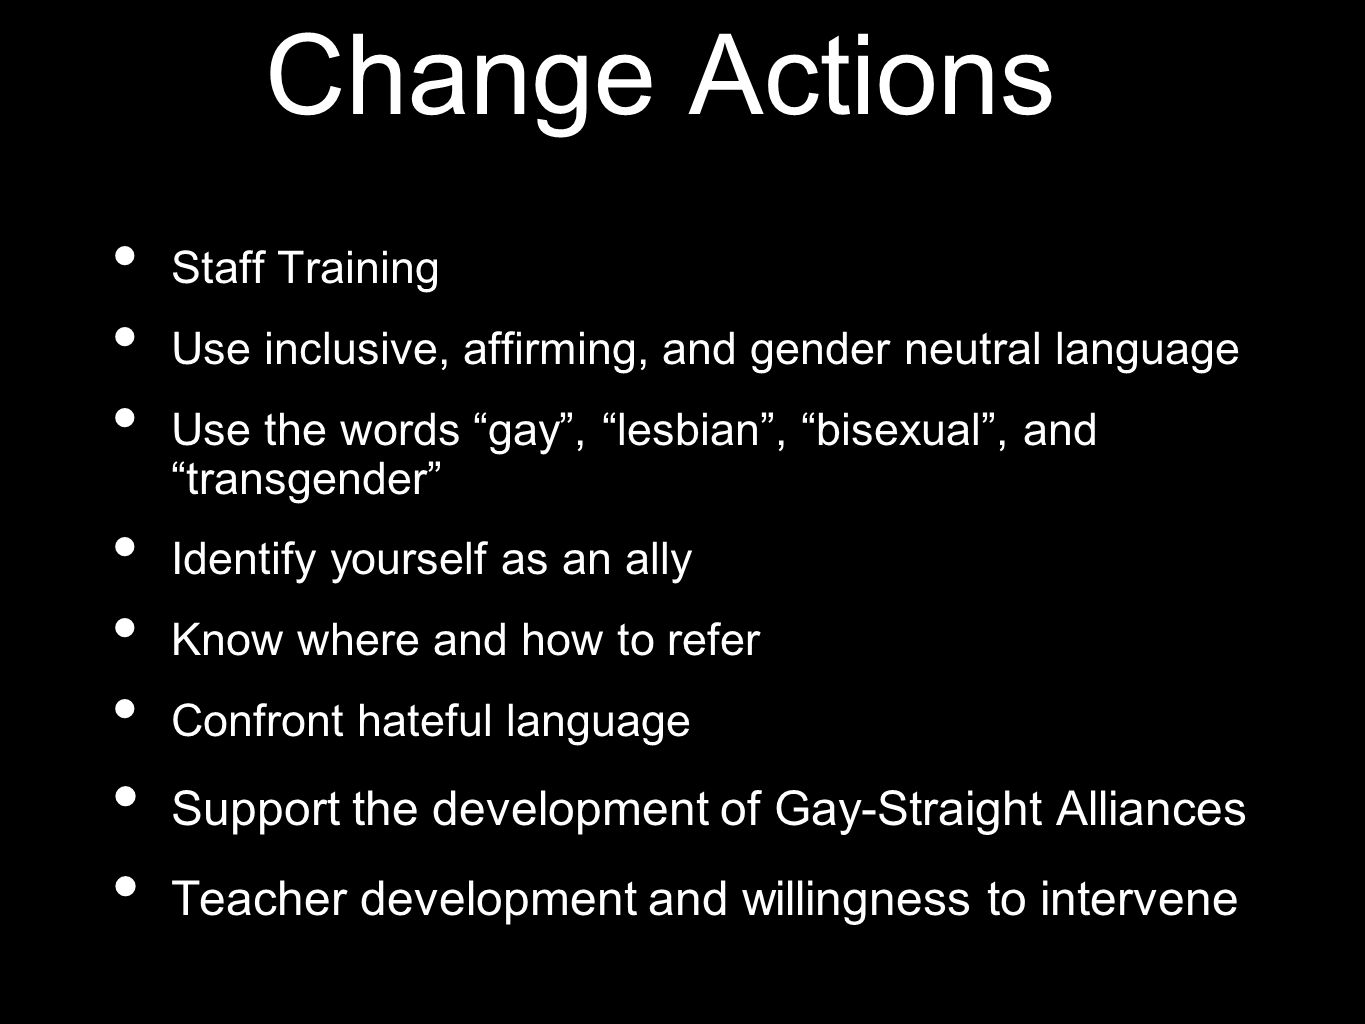 Change Actions Support the development of Gay-Straight Alliances